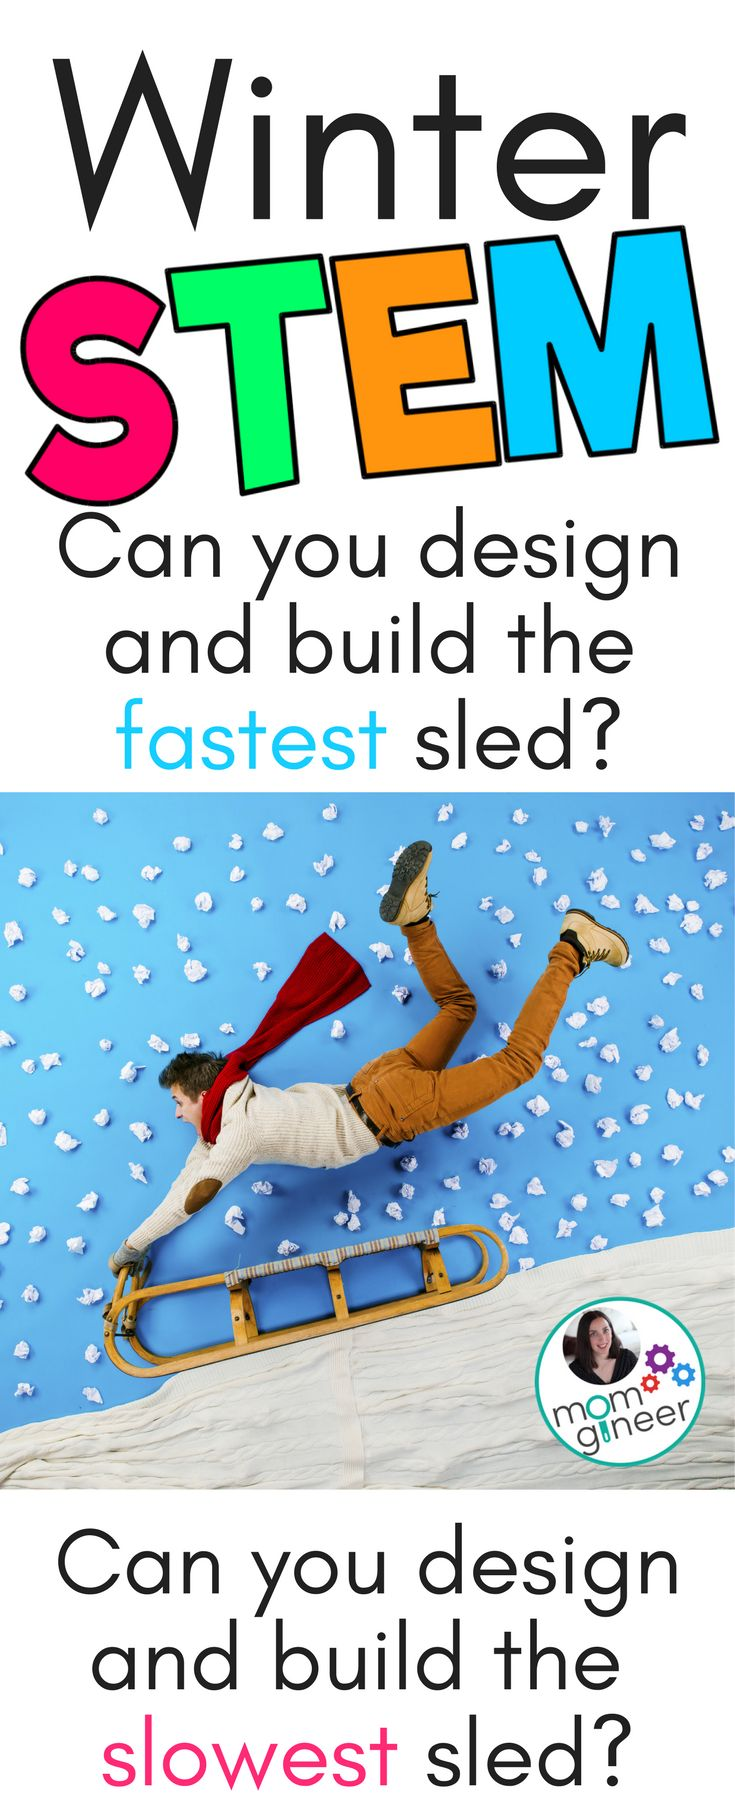 Winter STEM sled design challenge - explore friction and complete two activities. Design the fastest and slowest sleds possible! | Meredith Anderson - Momgineer for STEM Activities for Kids